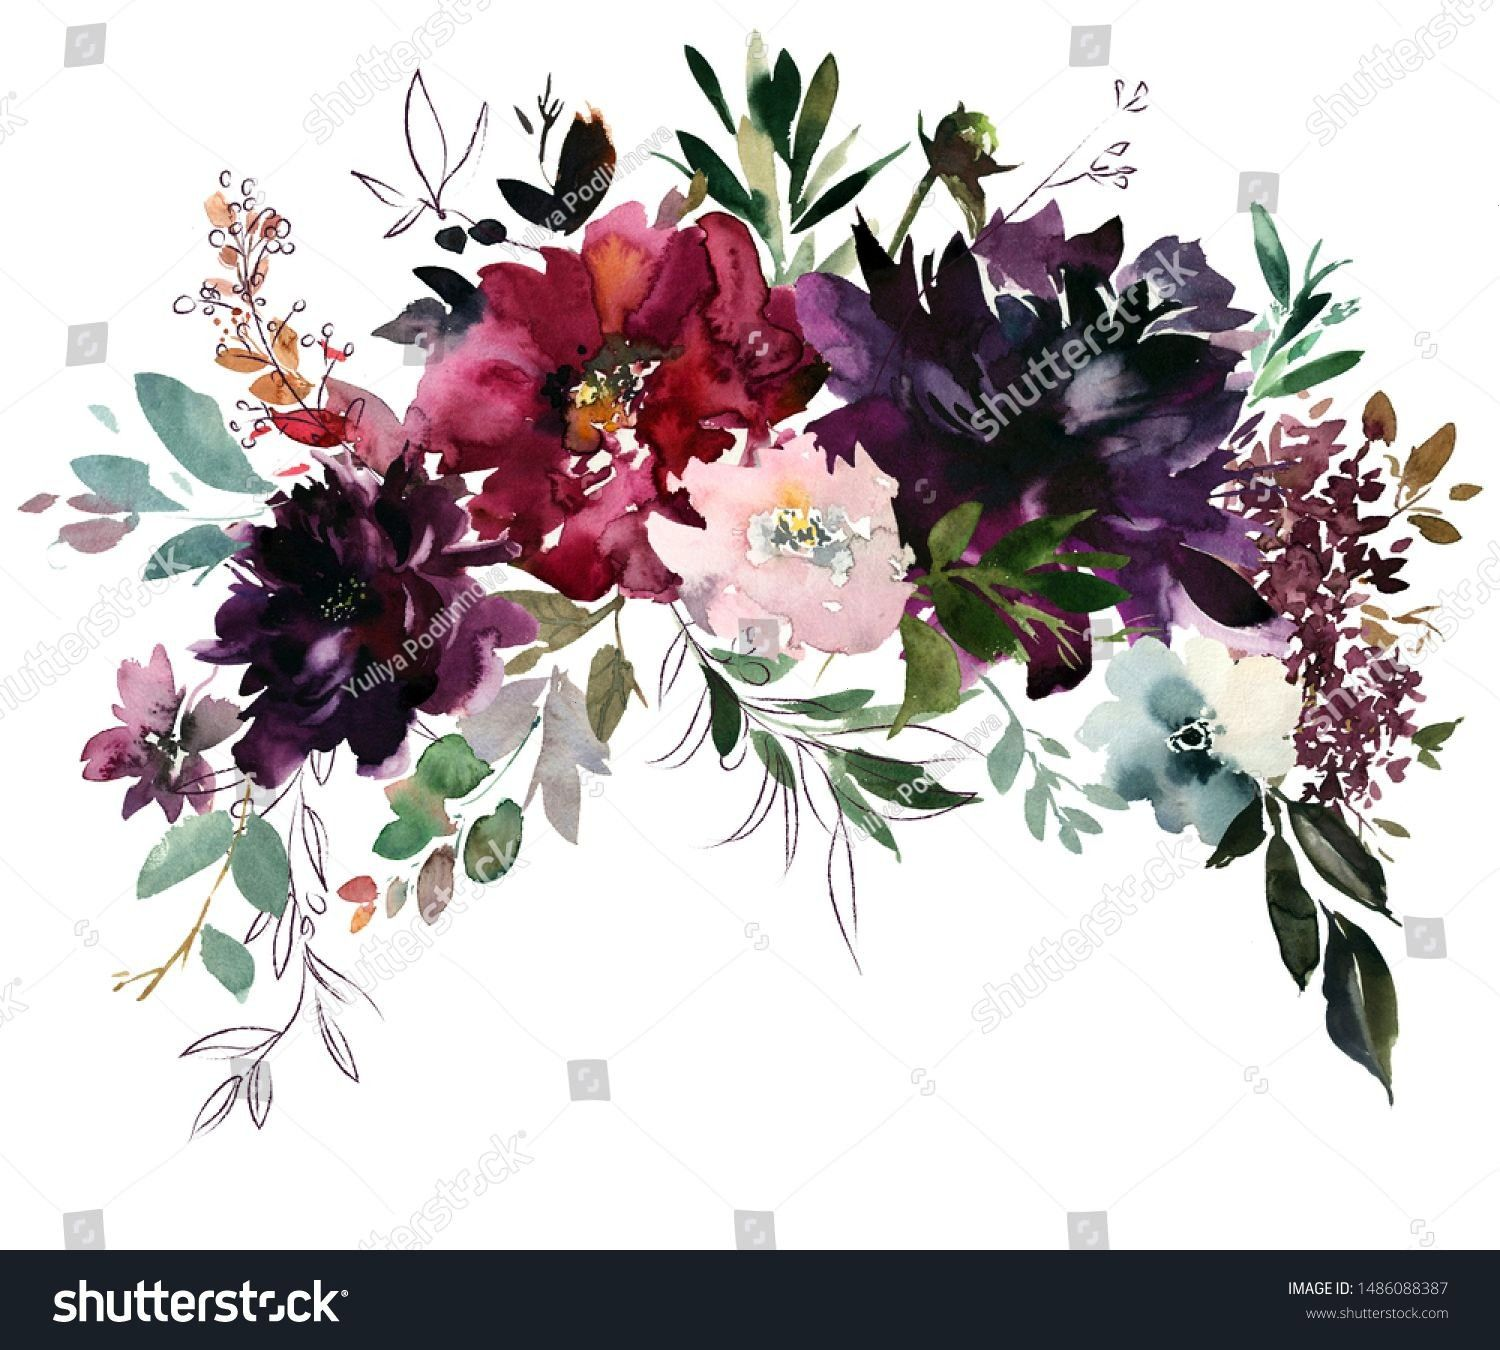 Plum Maroon Burgundy Peony Rose Watercolor Floral Arrangement Isolated on White Background Purple Plum Maroon Burgundy Peony Rose Watercolor Floral Arrangement Isolated o...